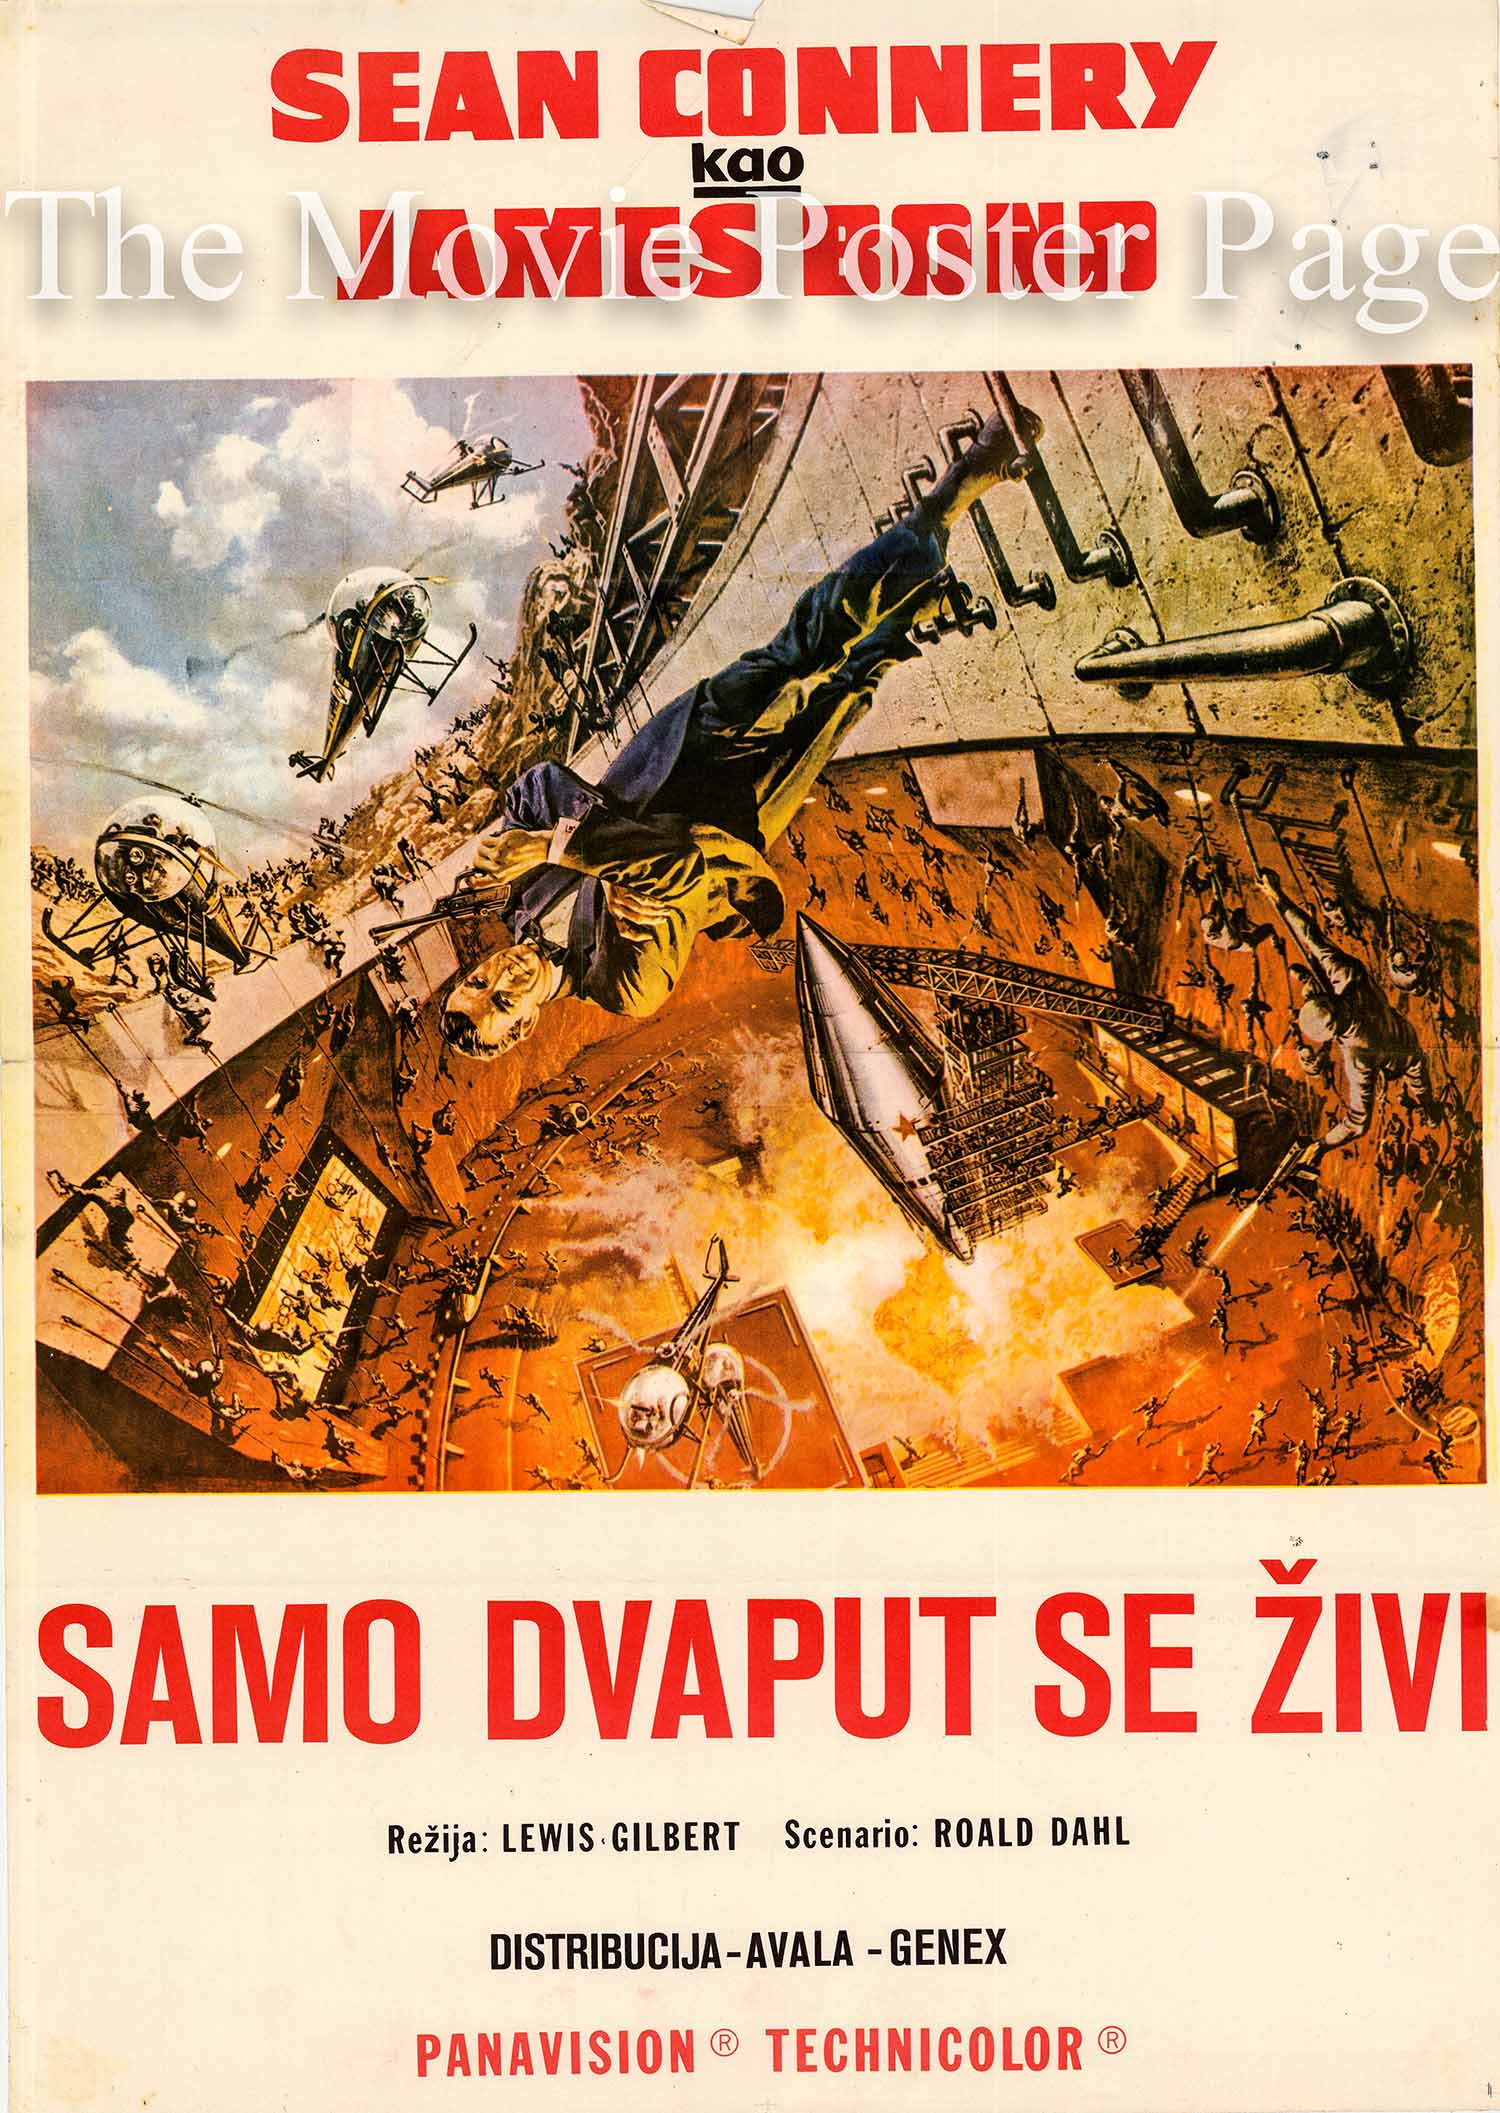 Pictured is a Yugoslav promotional poster for the 1967 Lewis Gilbert film You Only Live Twice starring Sean Connery as James Bond.